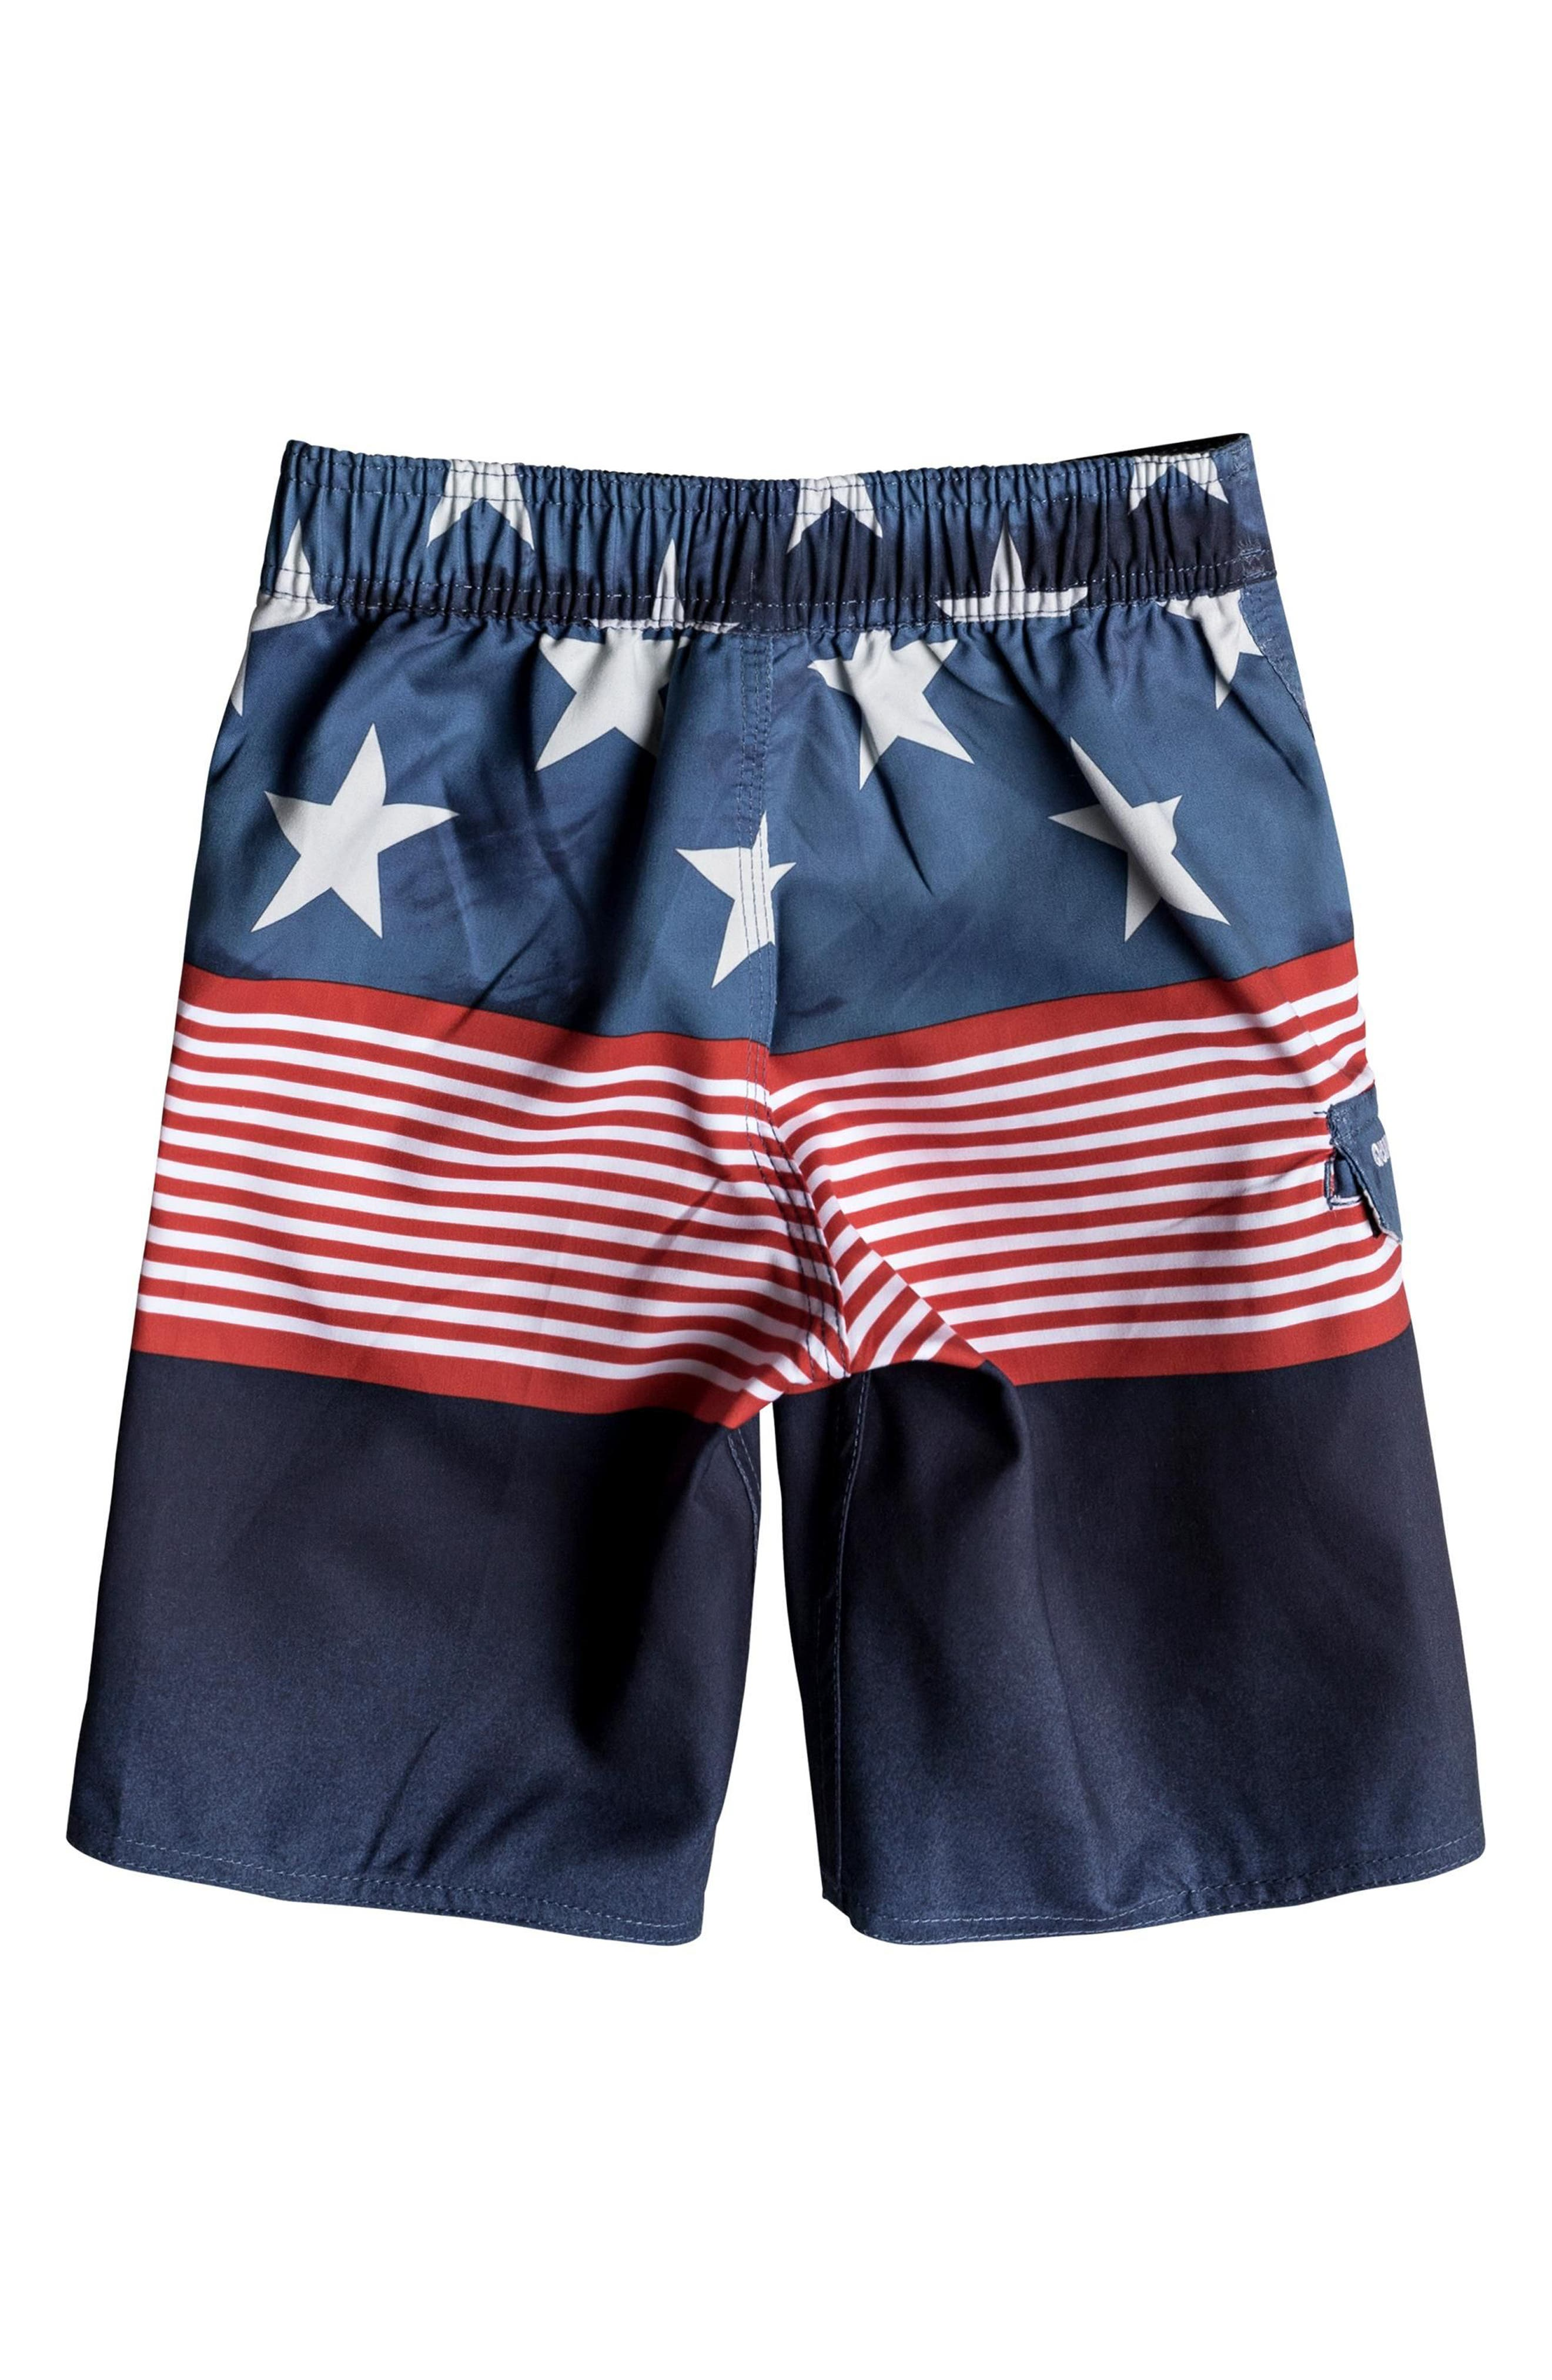 Division Independent Board Shorts,                             Alternate thumbnail 2, color,                             NAVY BLAZER